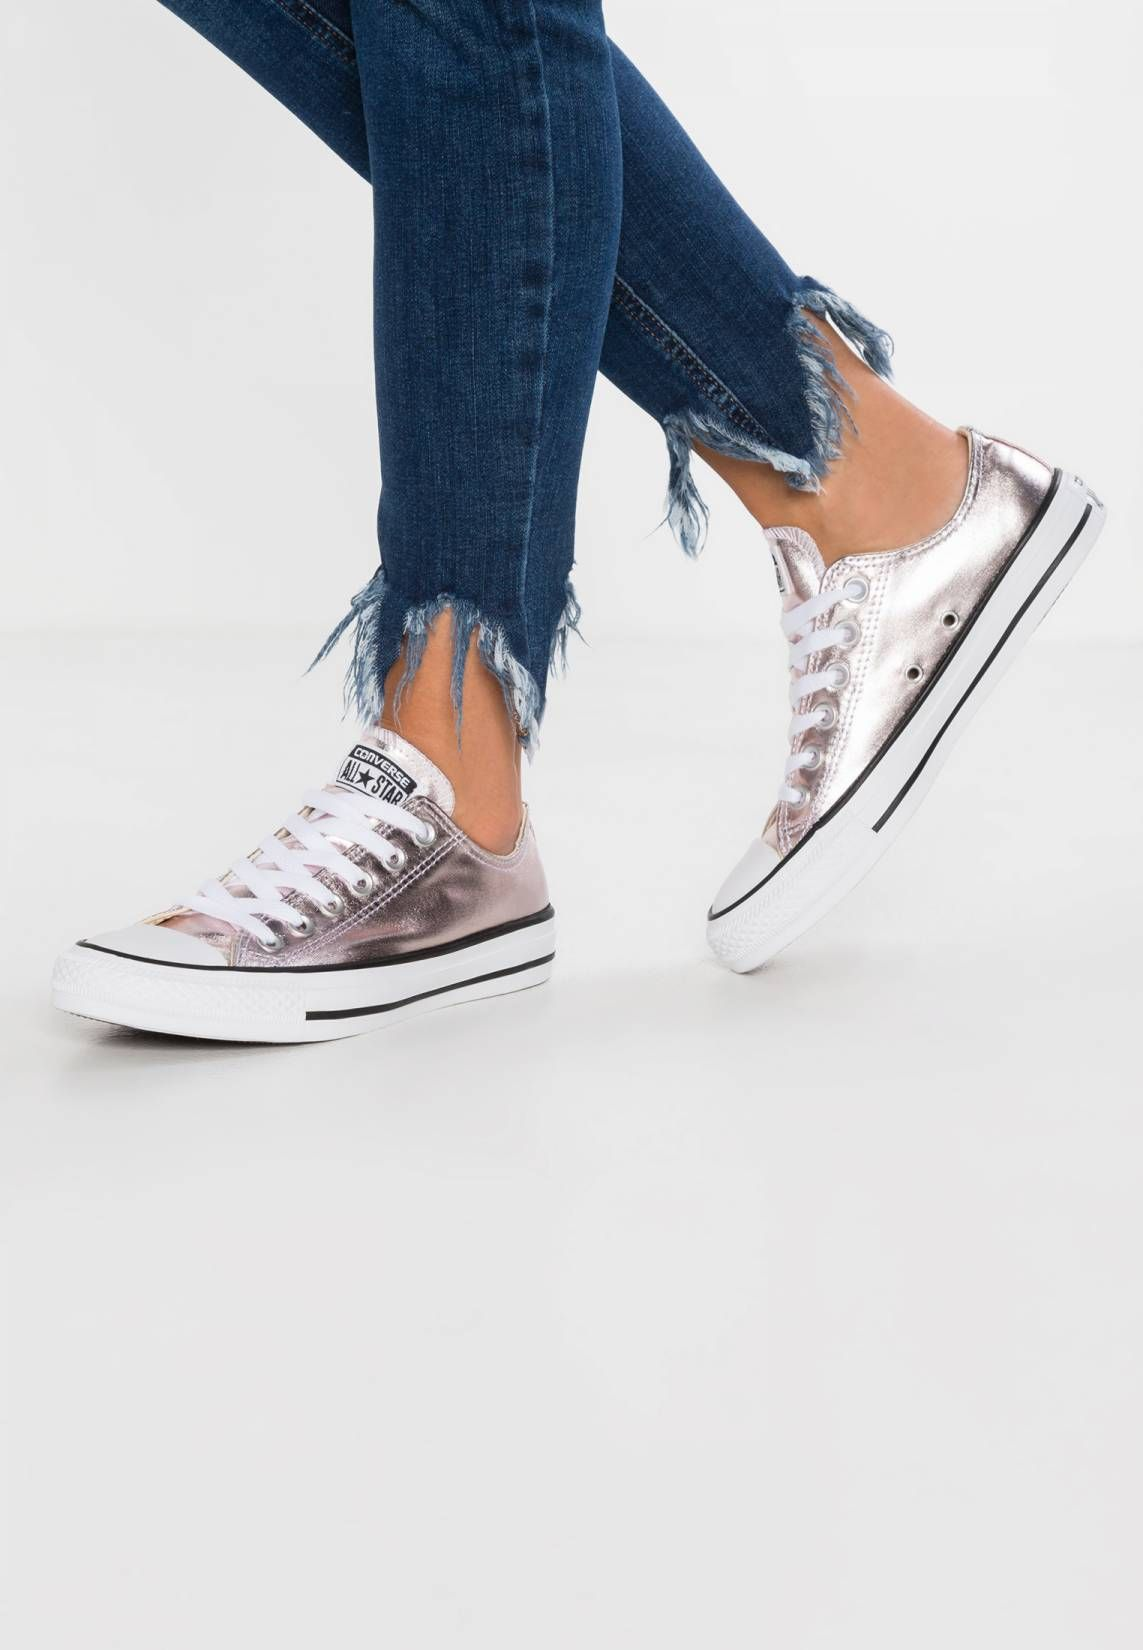 Converse CHUCK TAYLOR ALL STAR METALLIC CANVAS - Zapatillas altas rose quartz/white/black A5ATlrG550